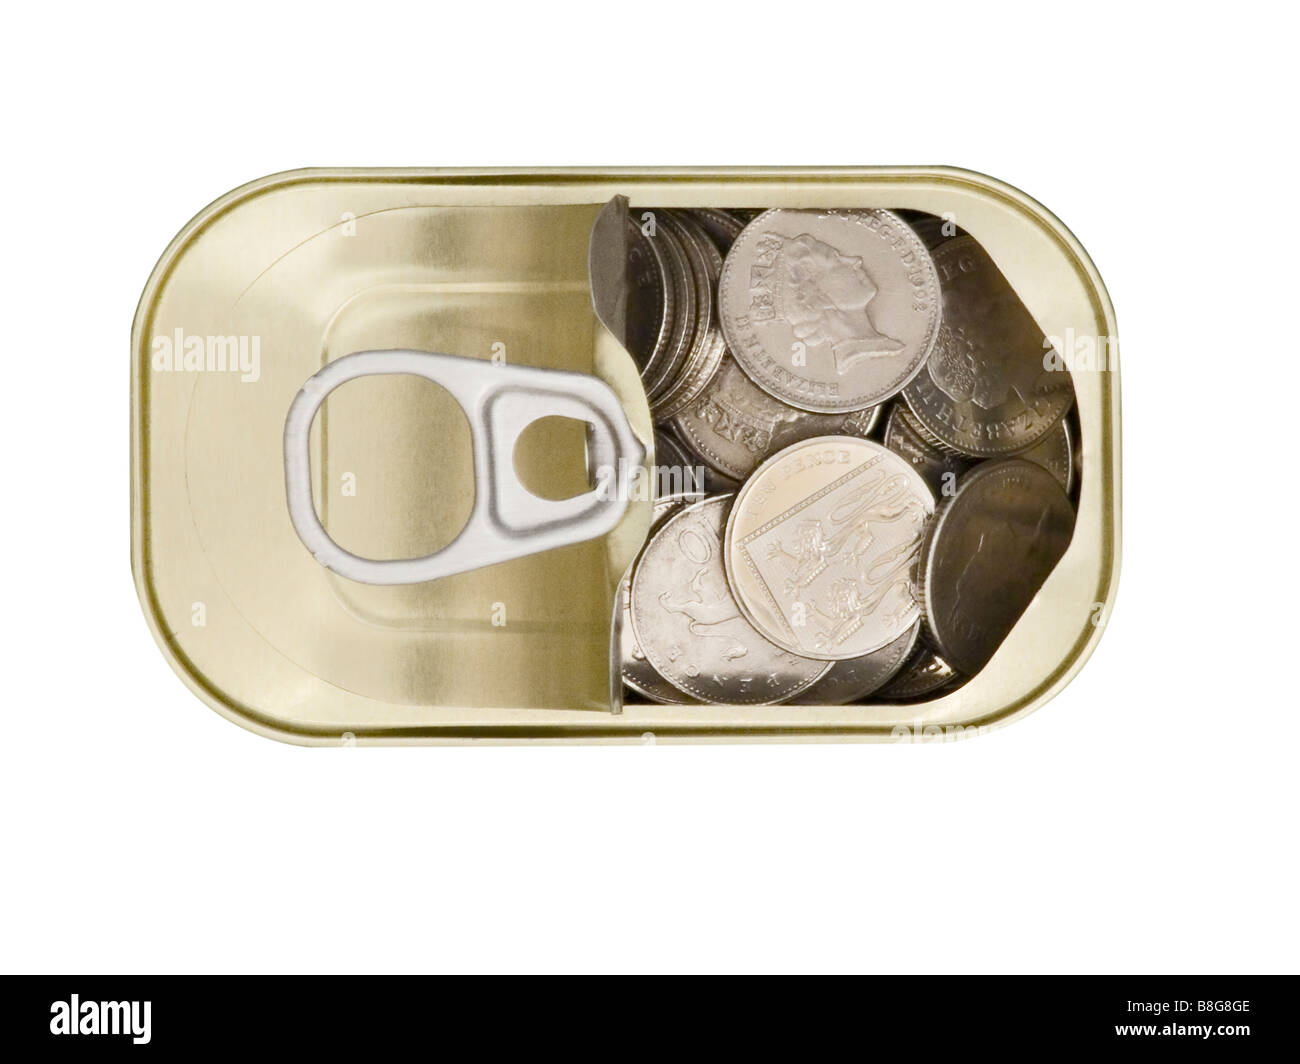 Ring Pull Tin Can containing Ten pence pieces on white background cutout - Stock Image